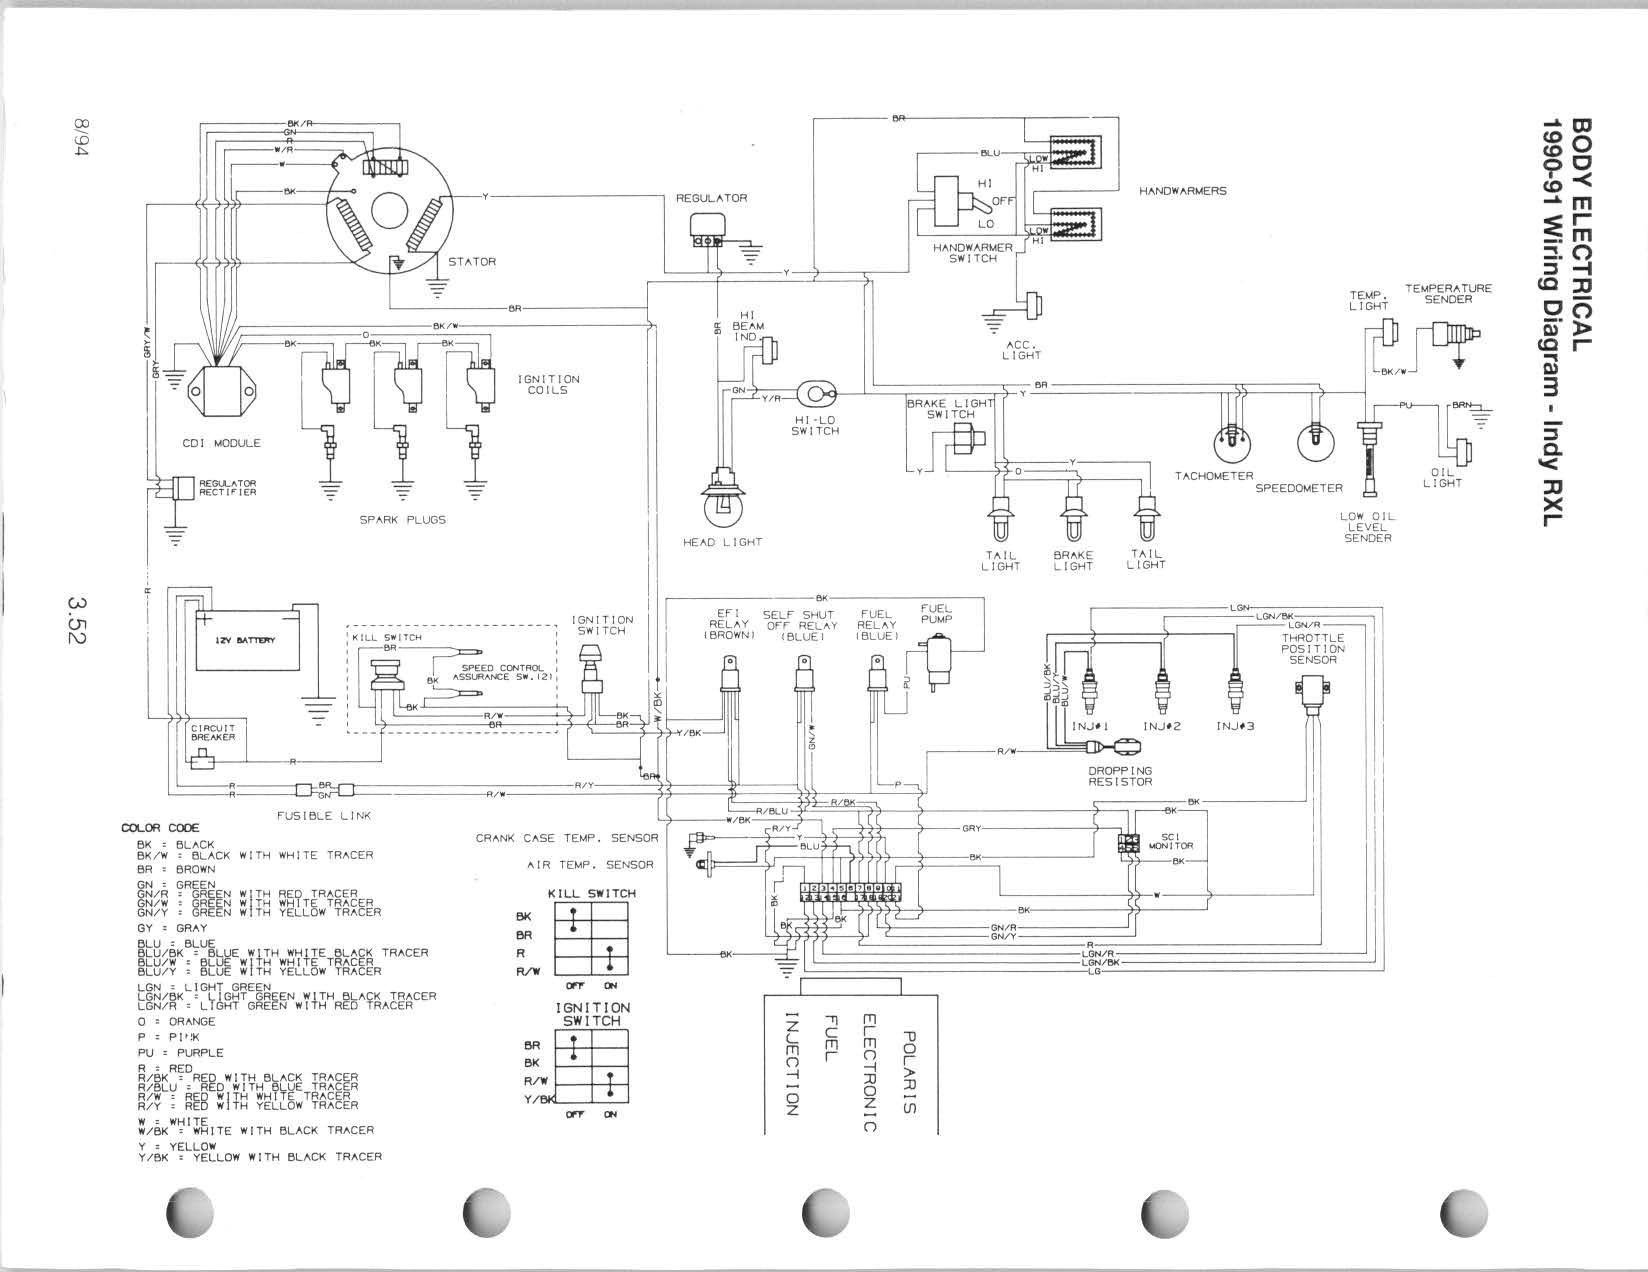 wiring diagram for 94 seadoo xp wiring diagram for 2007 polaris xp 700 ranger polaris ranger fuel pump wiring diagram collection